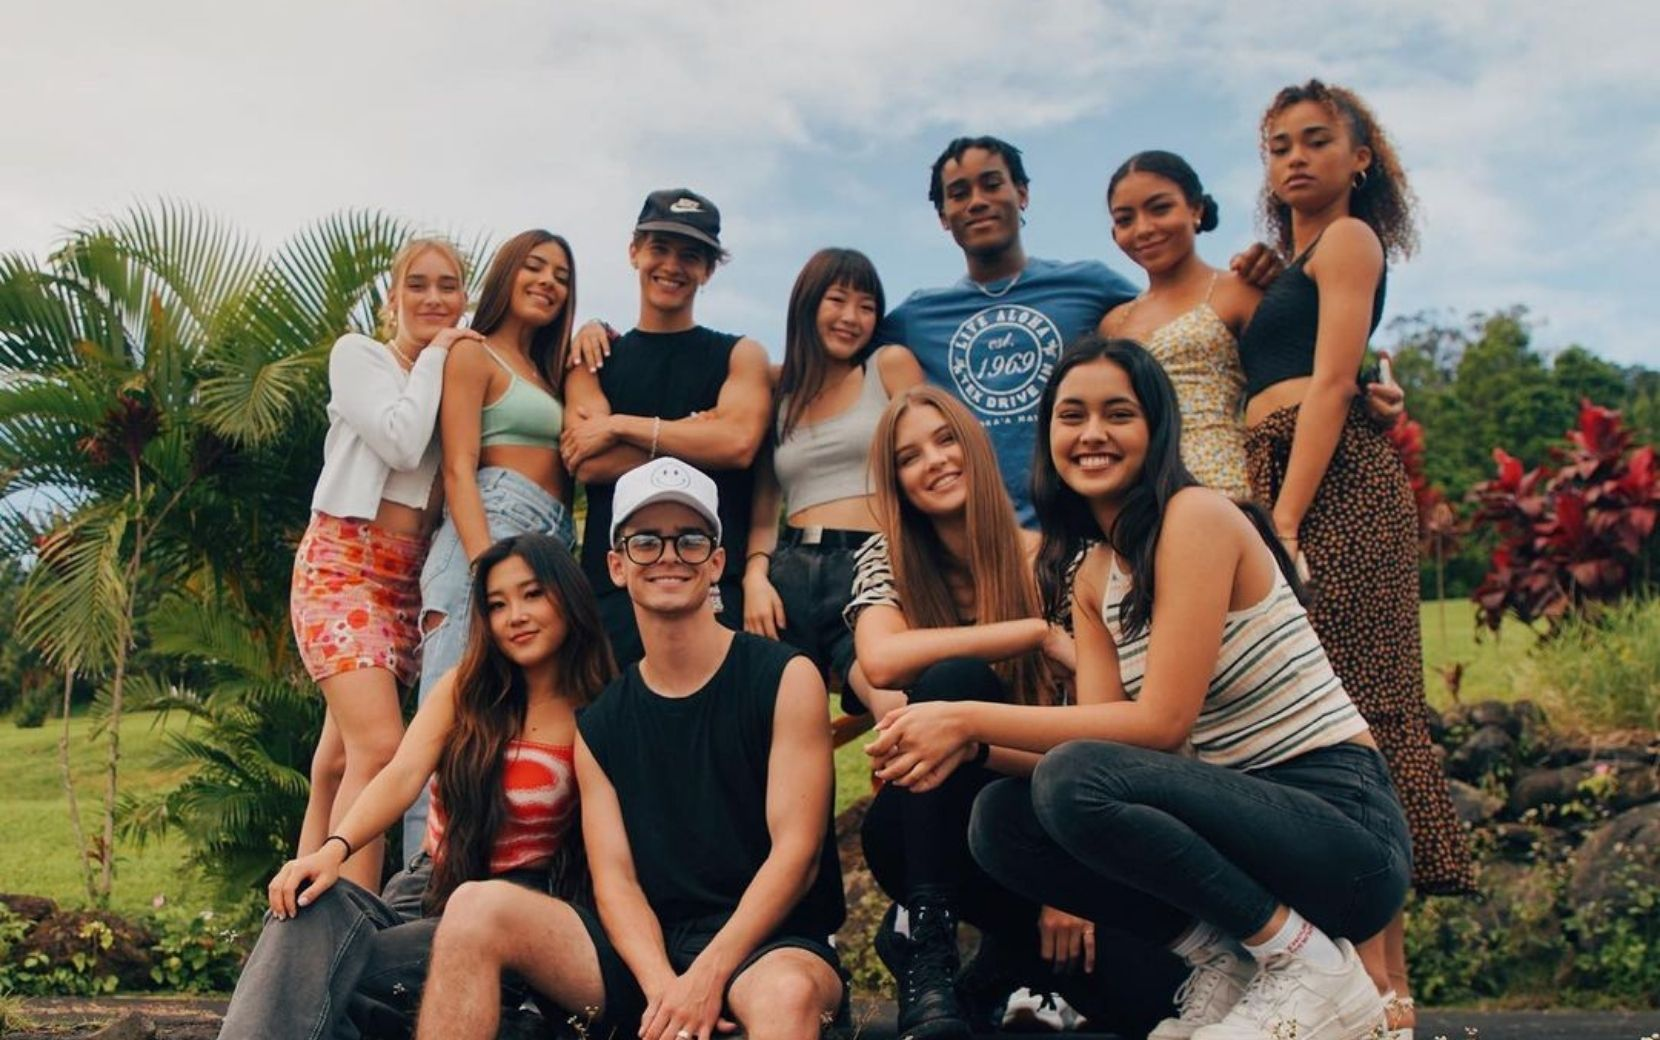 Integrantes do Now United fazem tour por mansão luxuosa no Havaí